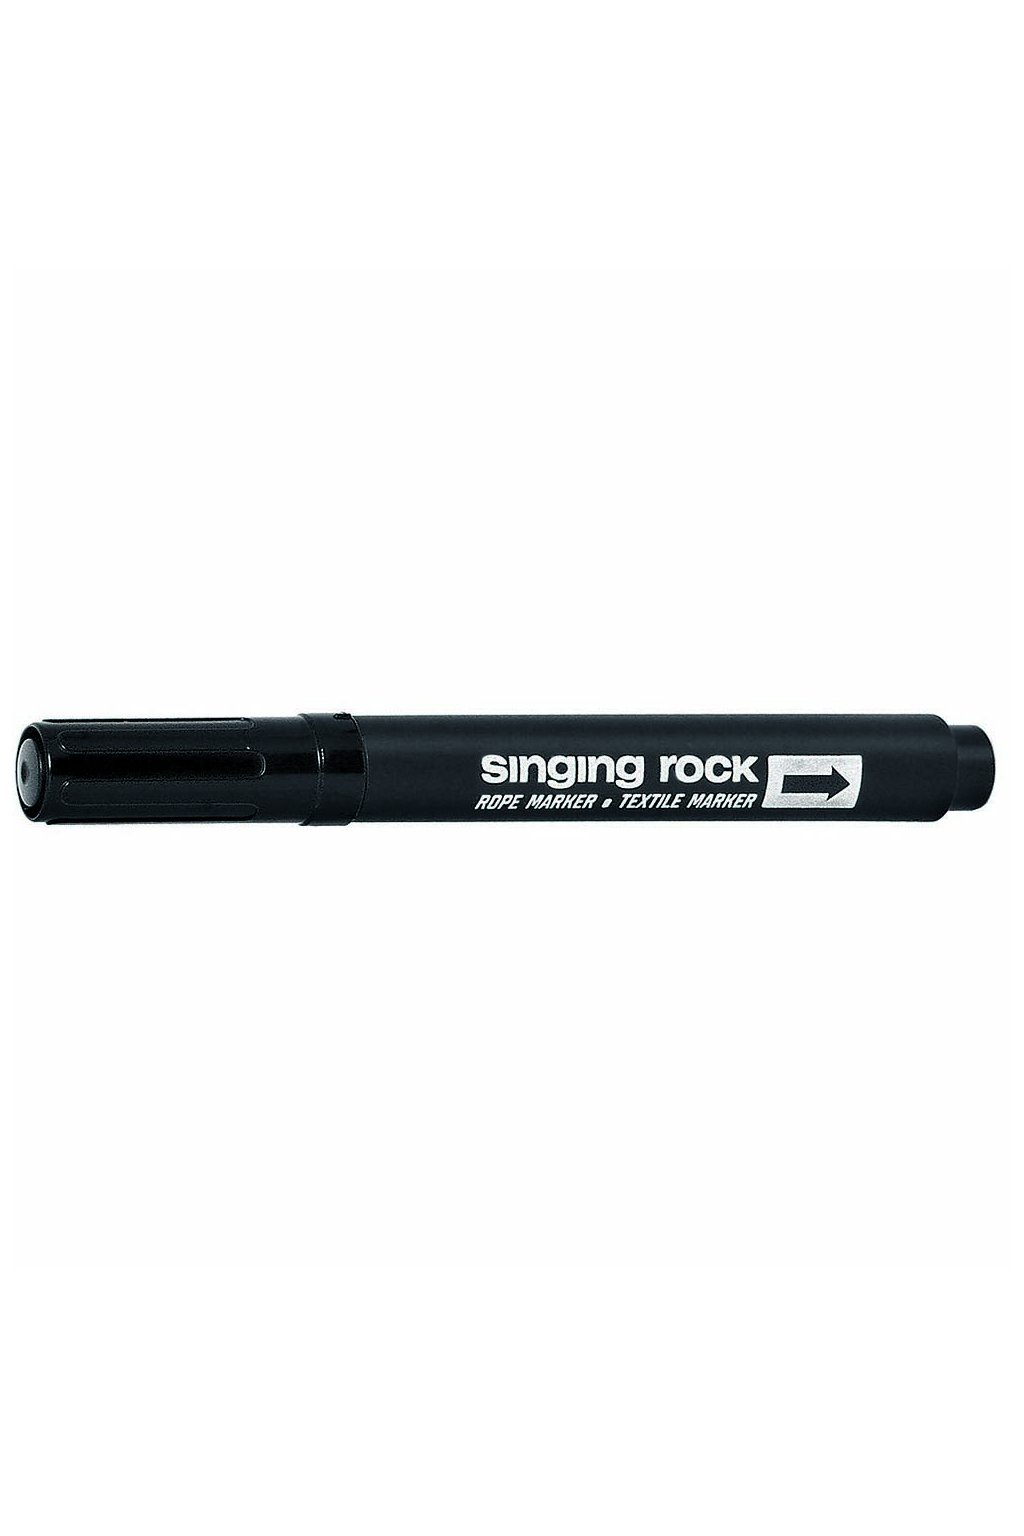 singing rock rope marker